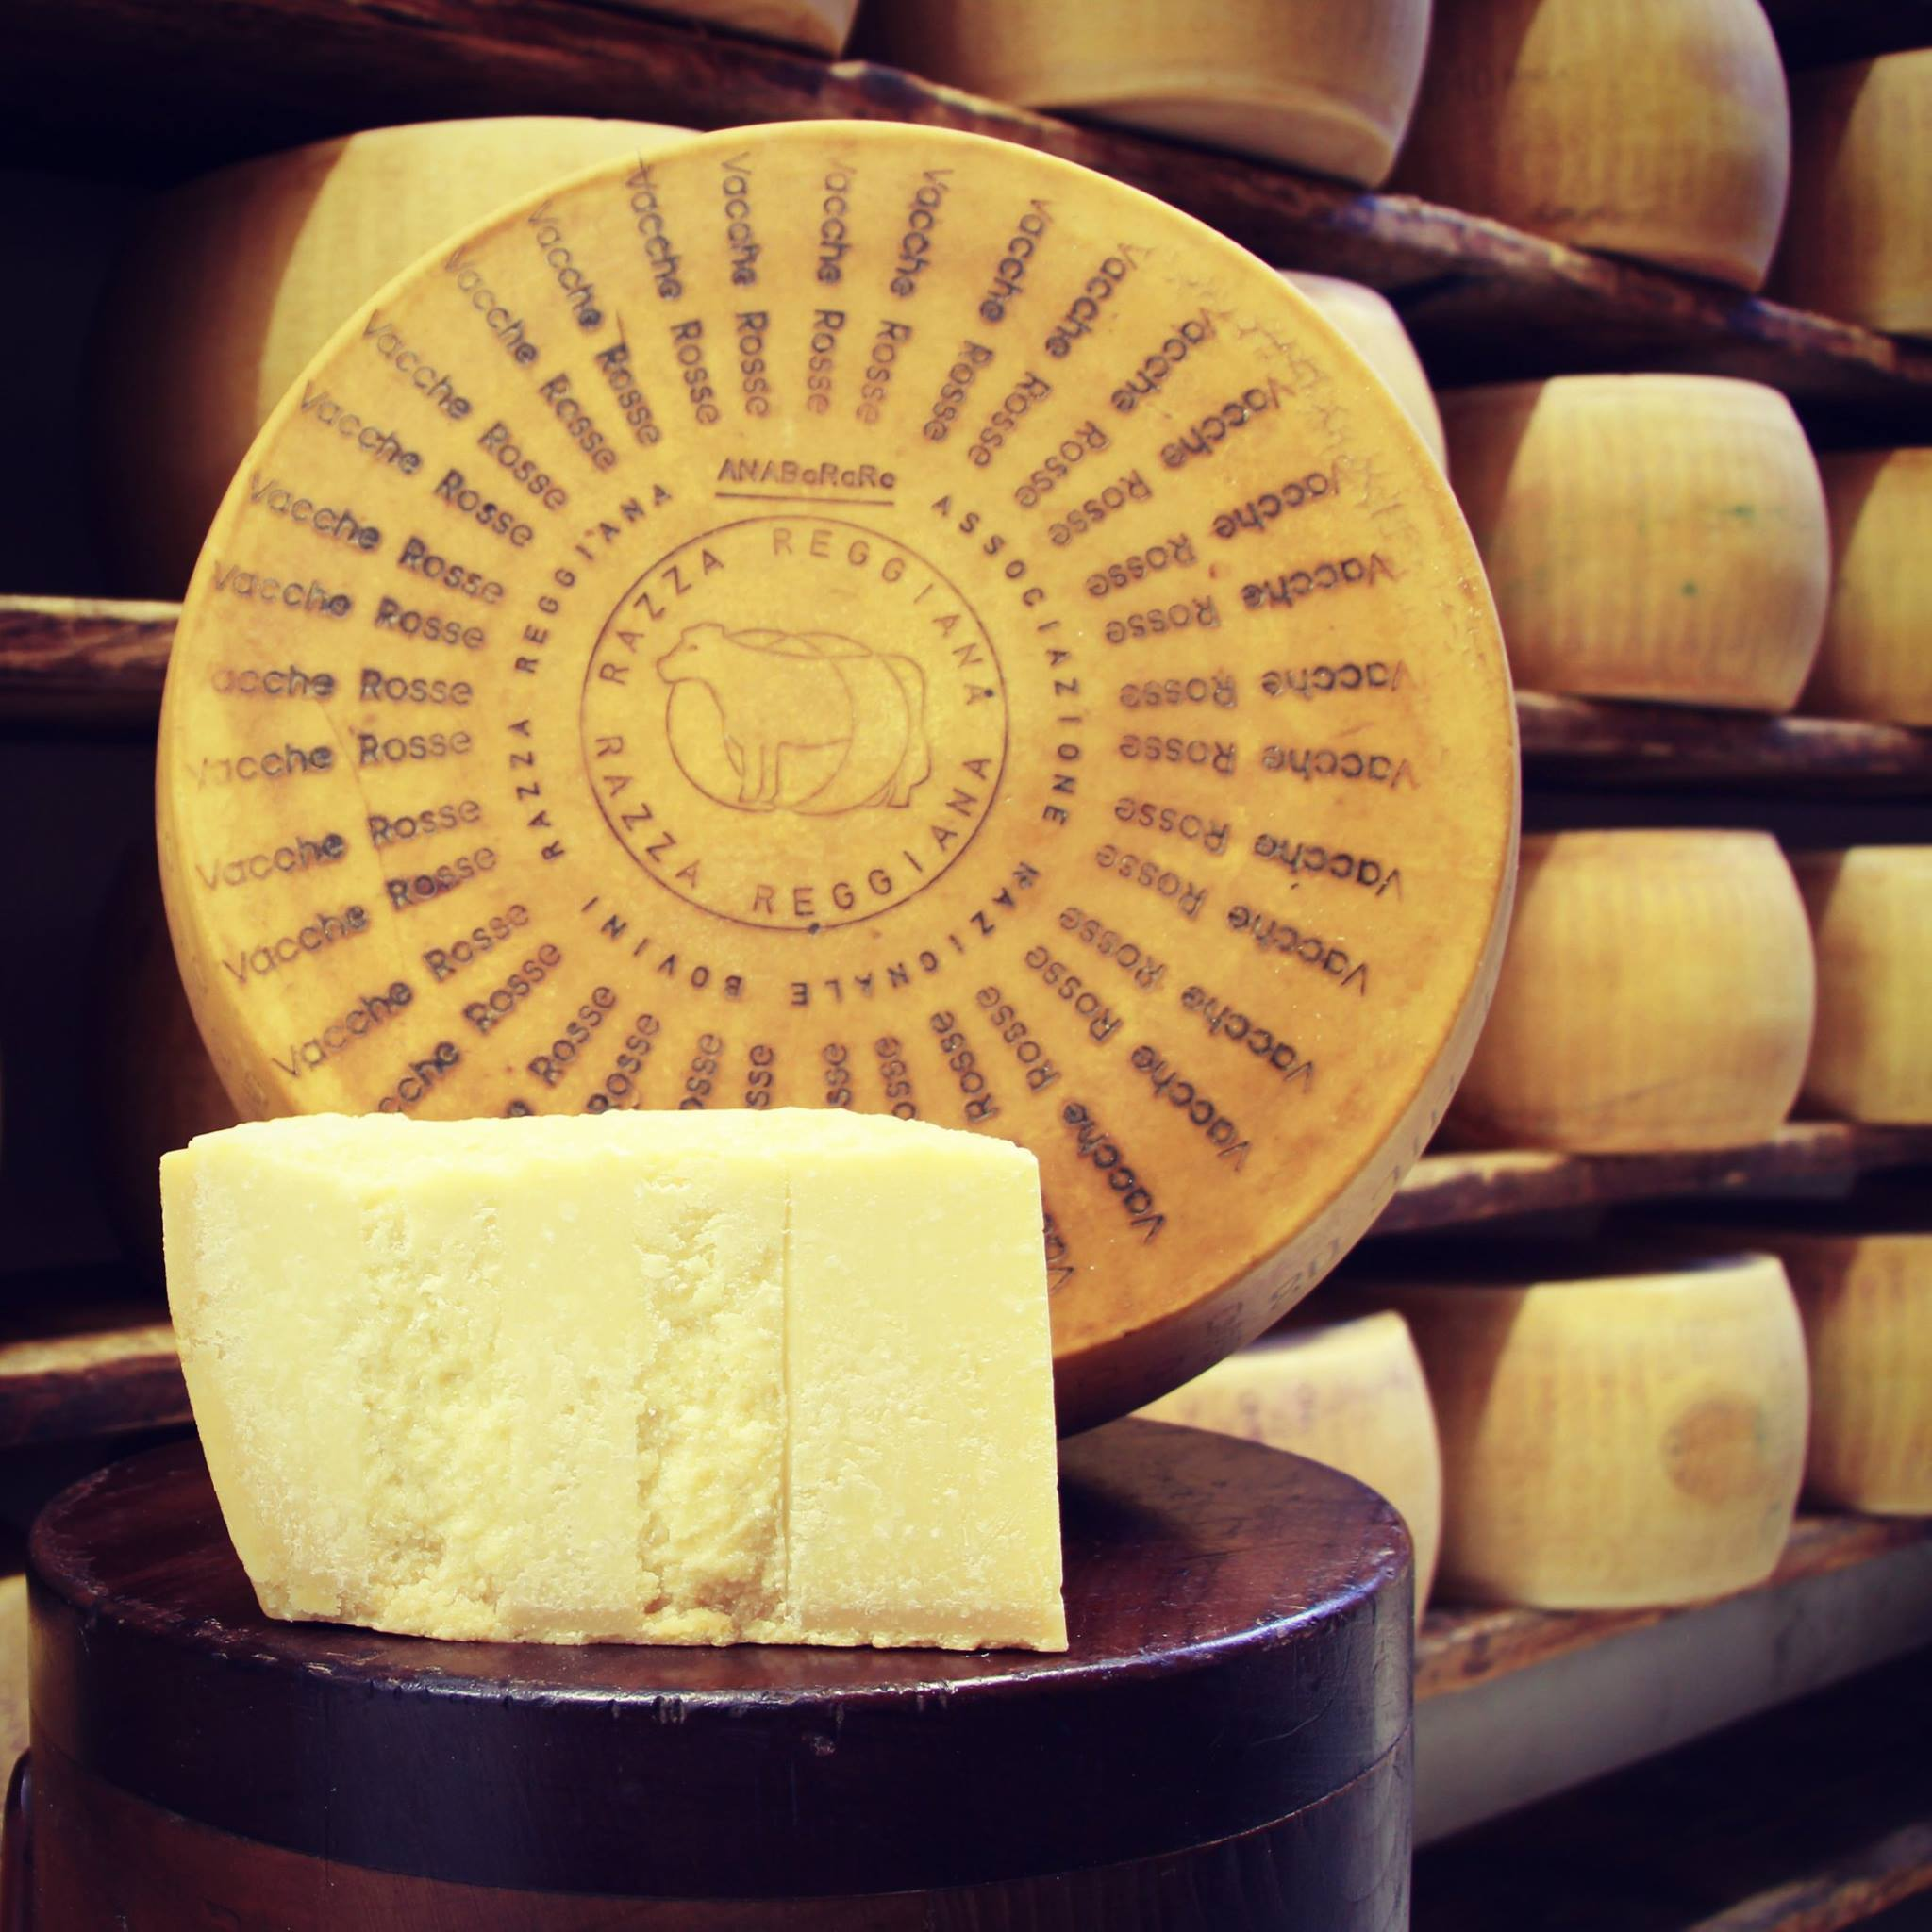 Parmigiano Reggiano Vacche Rosse(milk from the red cows) -  24/30 mesi - 1,00/1,05 Kg.